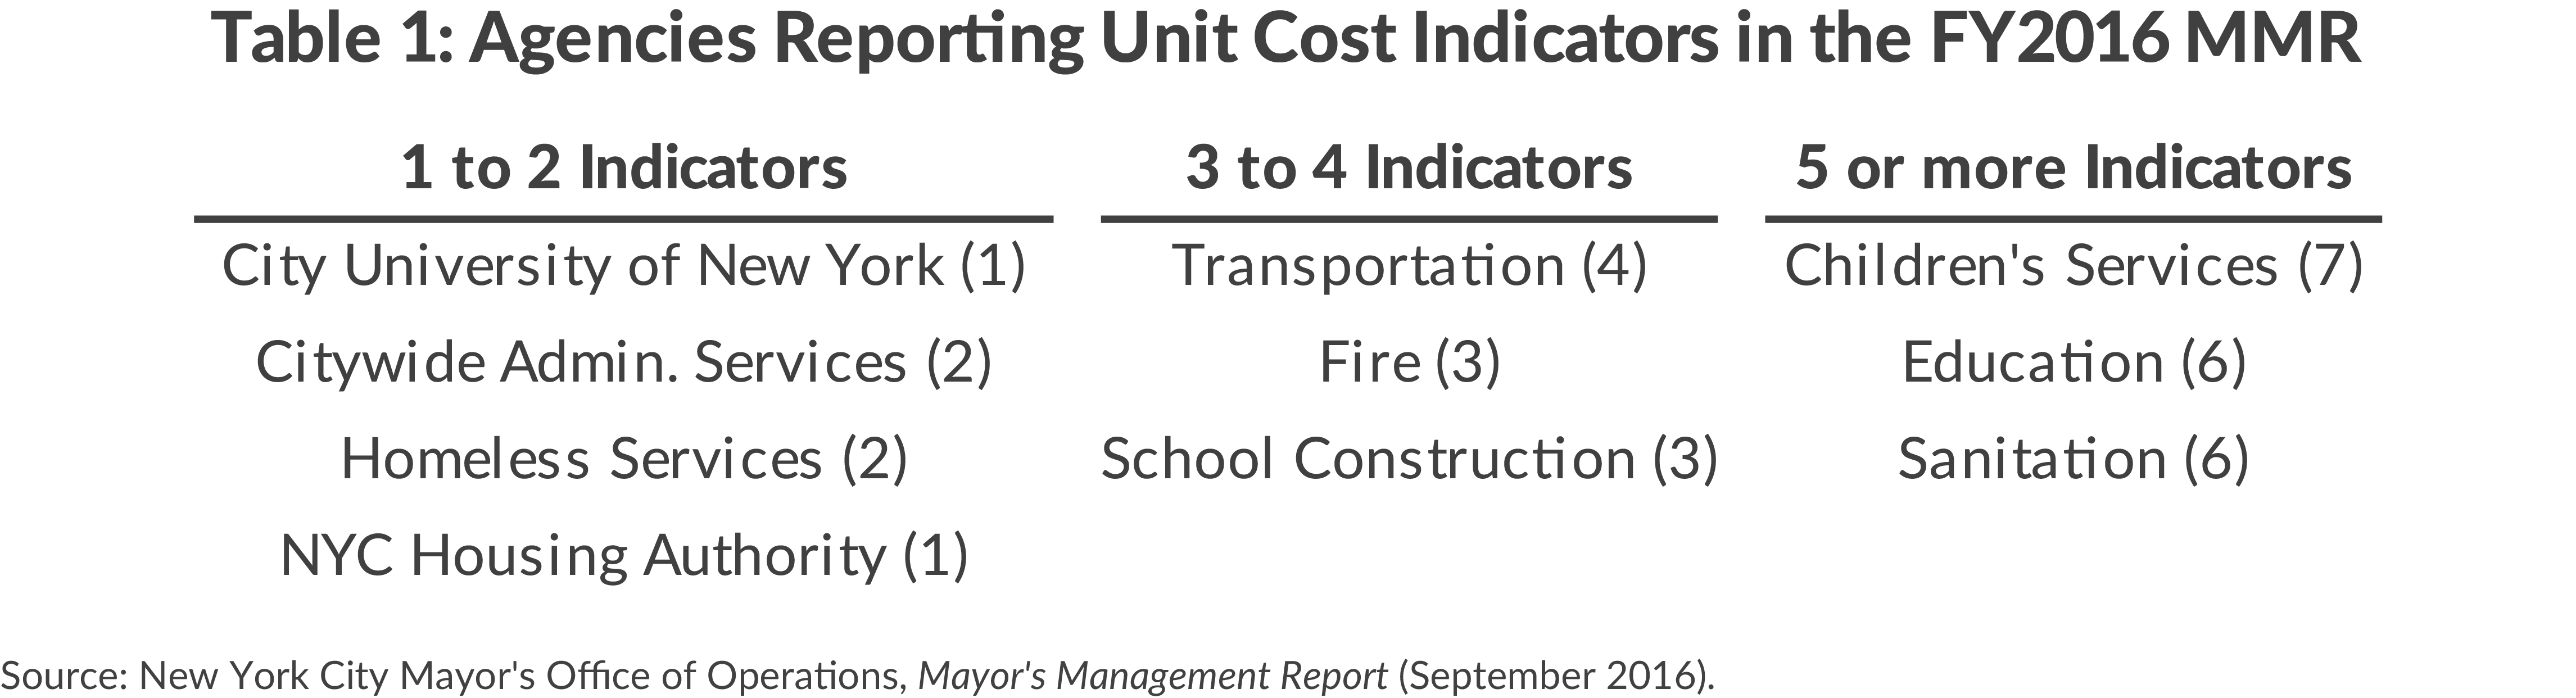 Table 1: Agencies Reporting Unit Cost Indicators in the FY2016 MMR